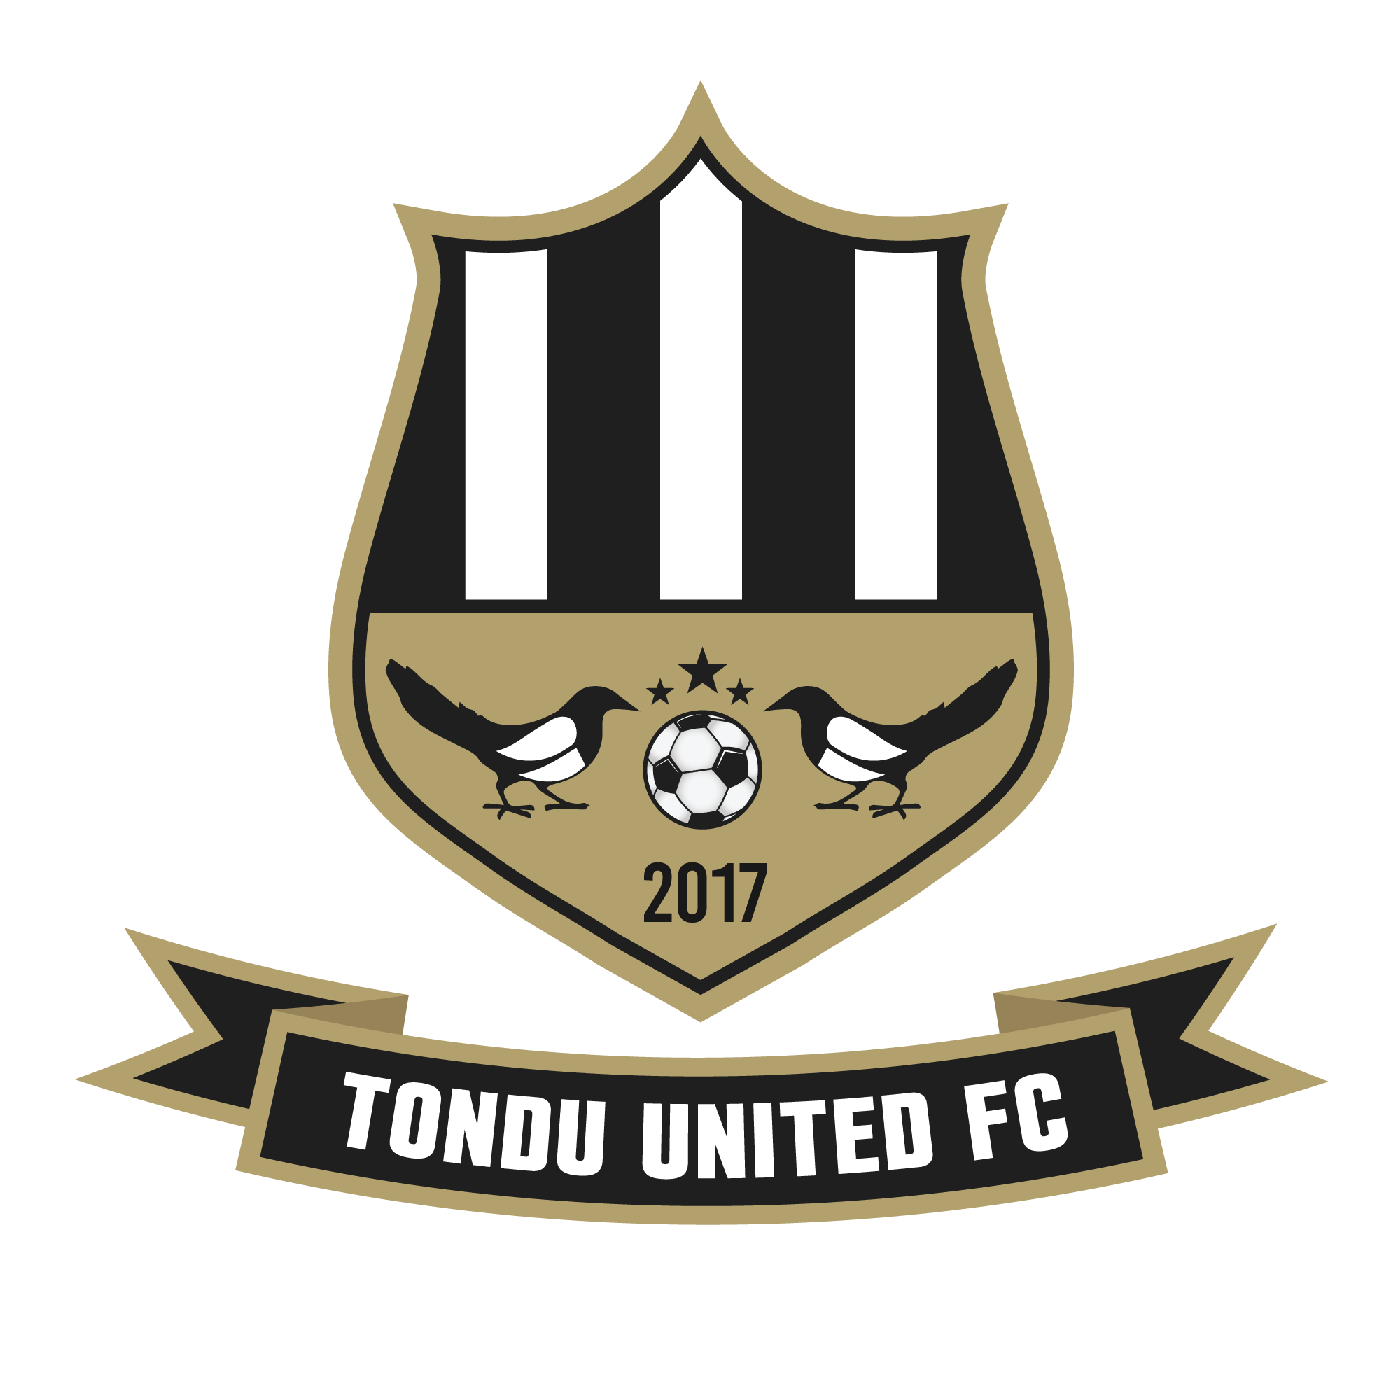 members.tonduunited.co.uk